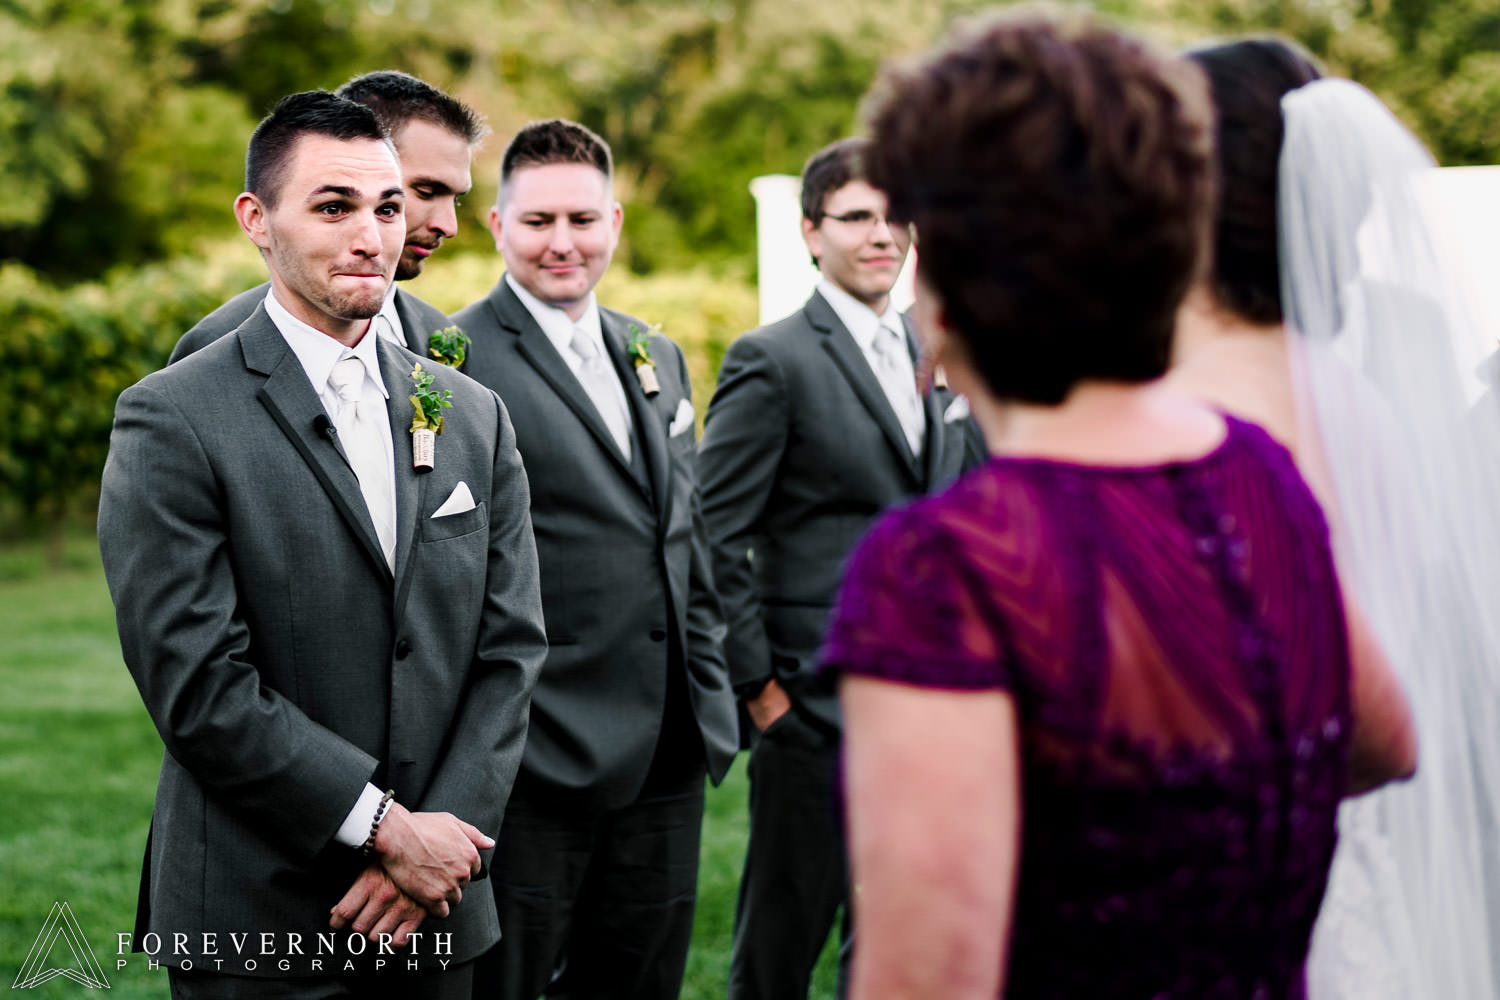 Mendyk-Valenzano-Family-Winery-NJ-Wedding-Photographer-48.JPG